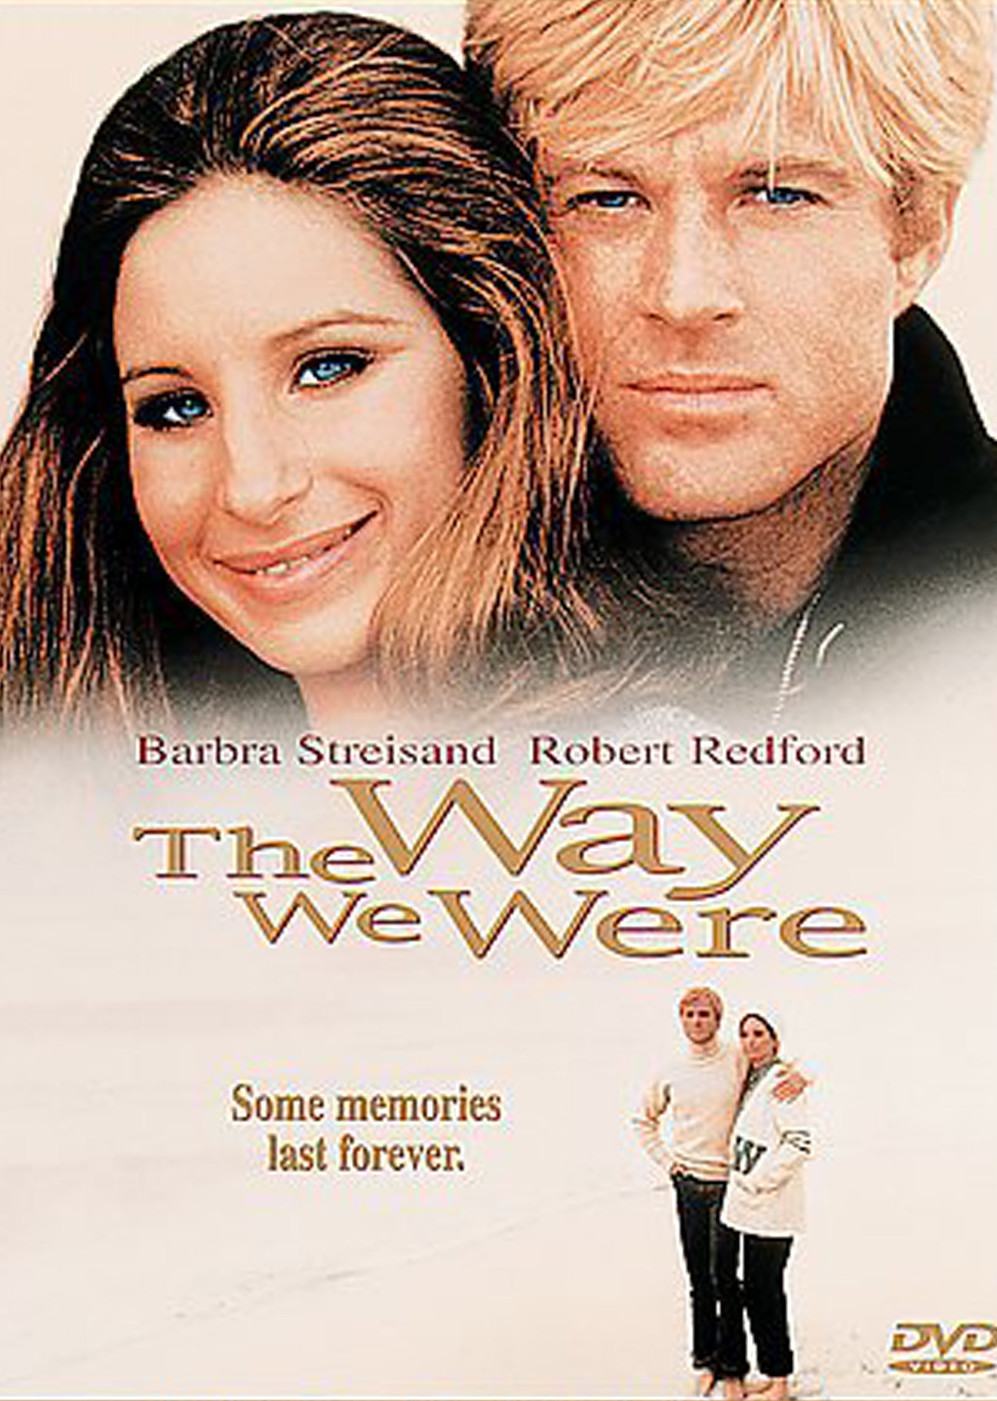 Robert Redford The Way We Were Create a memorable Val...